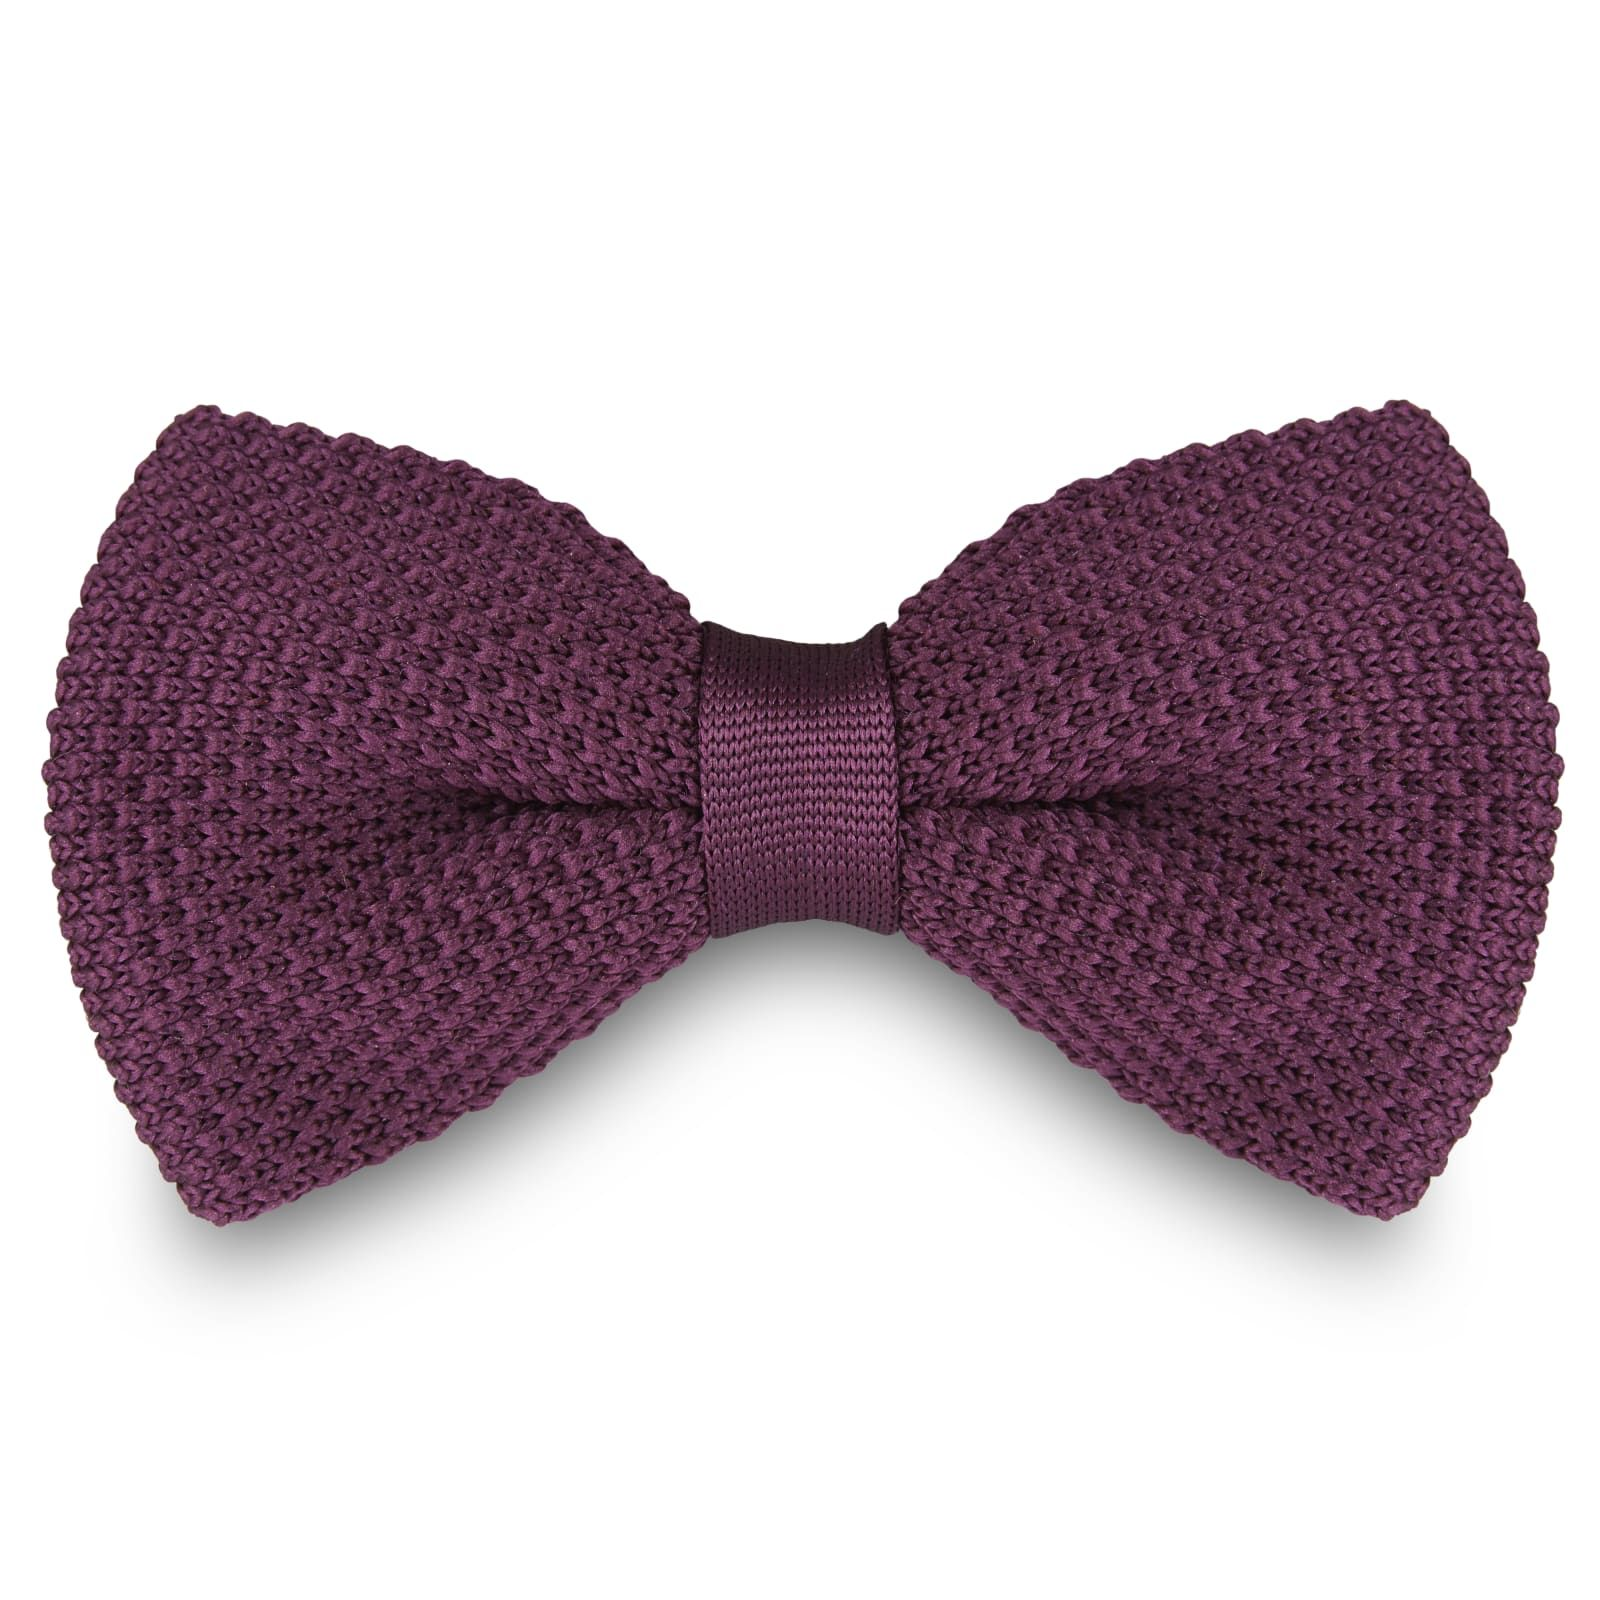 Photo of Mauve Knitted Bow Tie | In stock! | Tailor Toki